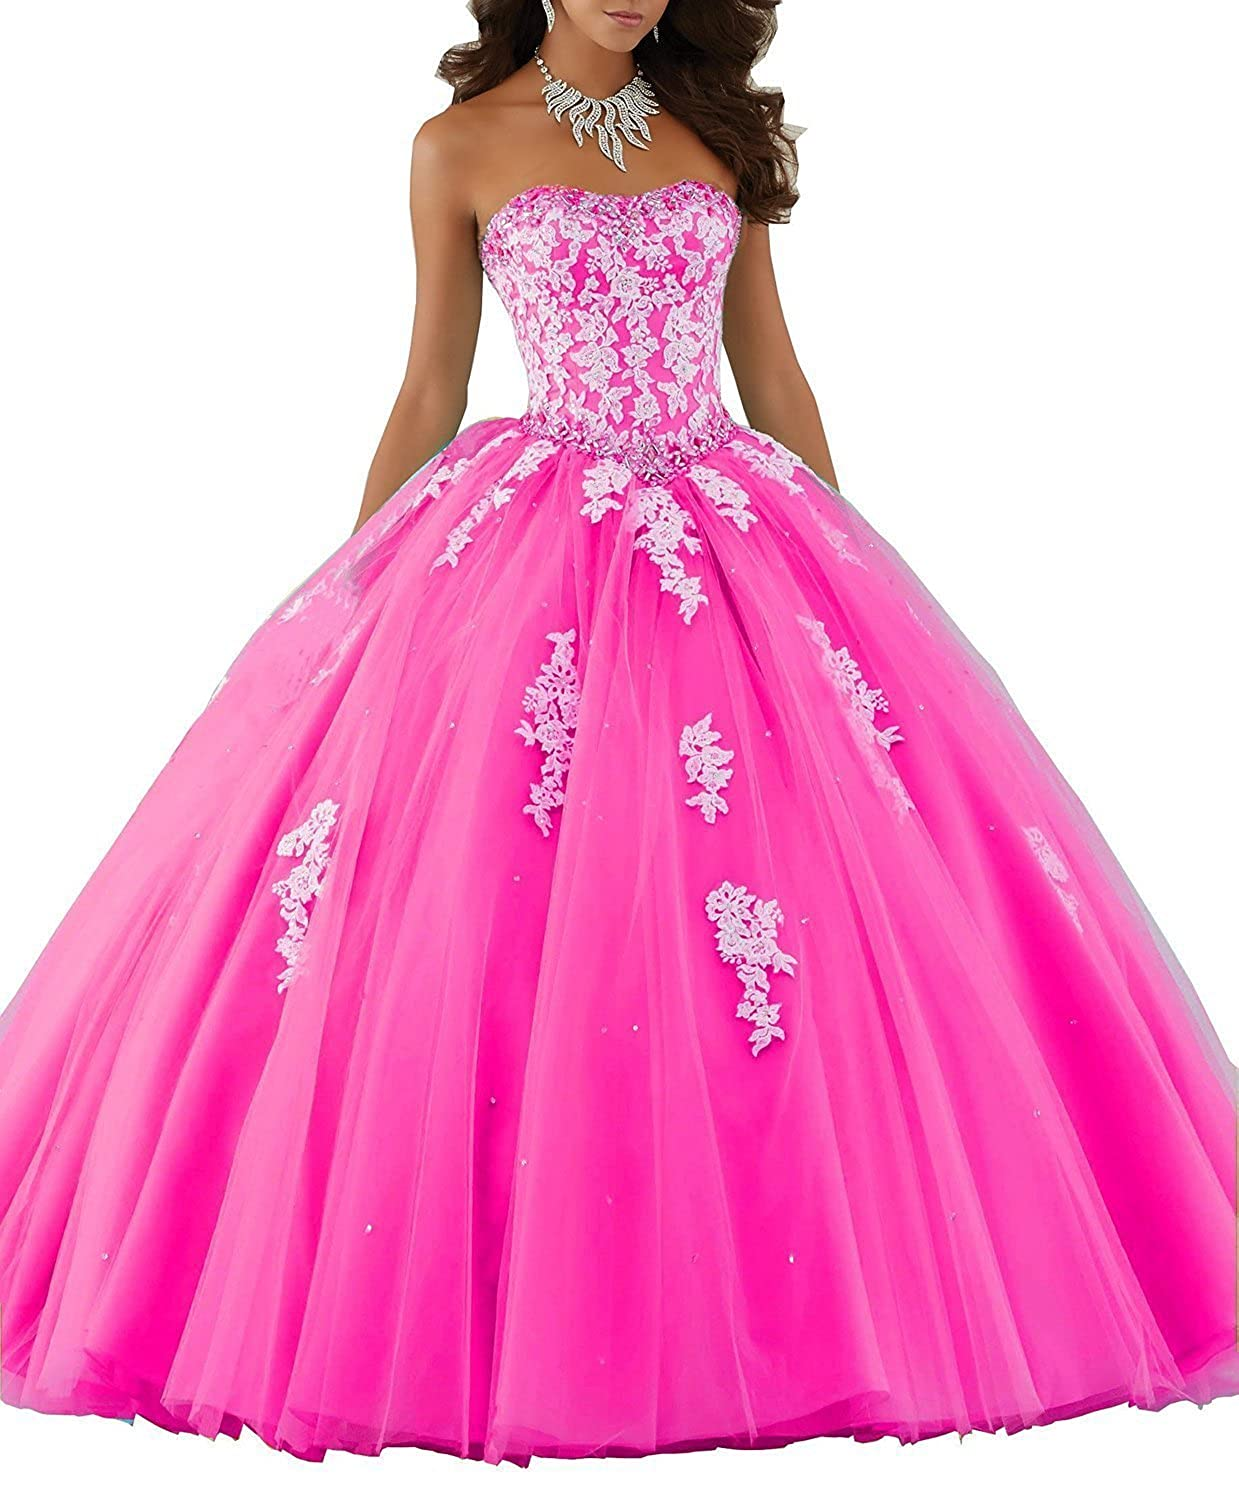 Fuchsia Ellenhouse Sweetheart Ball Gown Long Lace Applique Tulle Quinceanera Dress EL047